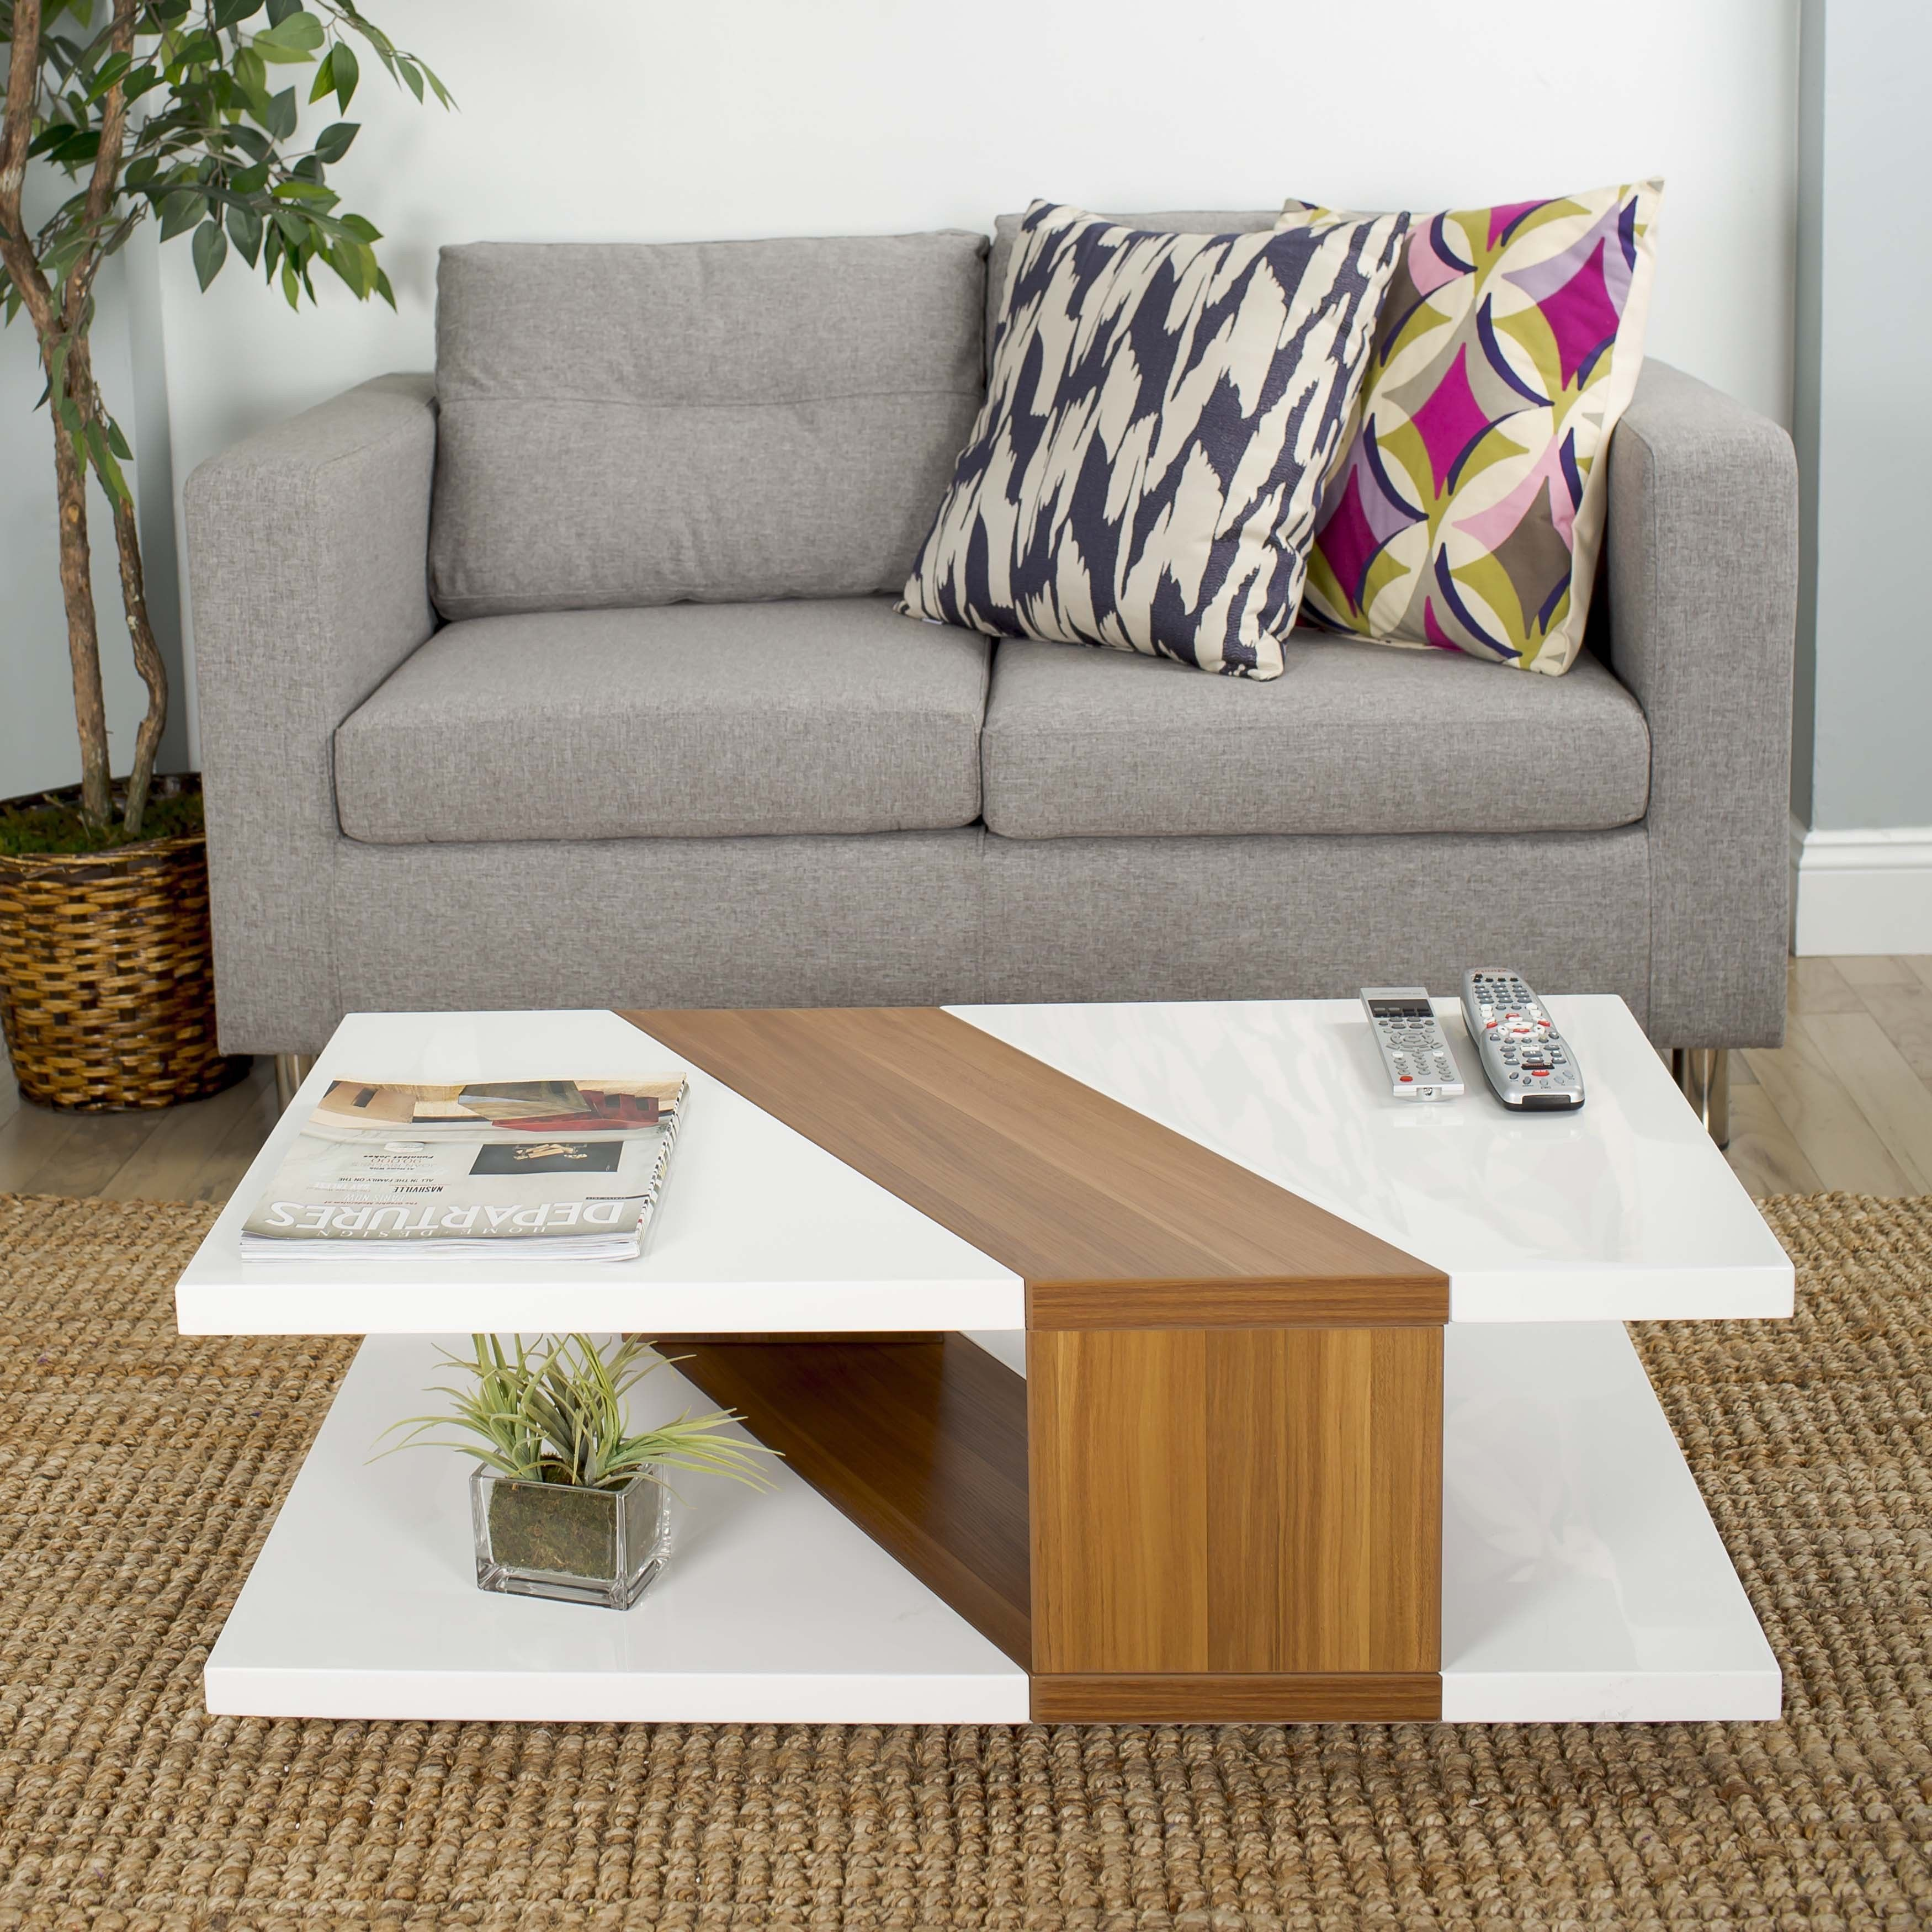 Couchtisch Bianca Jazz Up Your Home With This Sleek Modern Bianca Coffee Table With